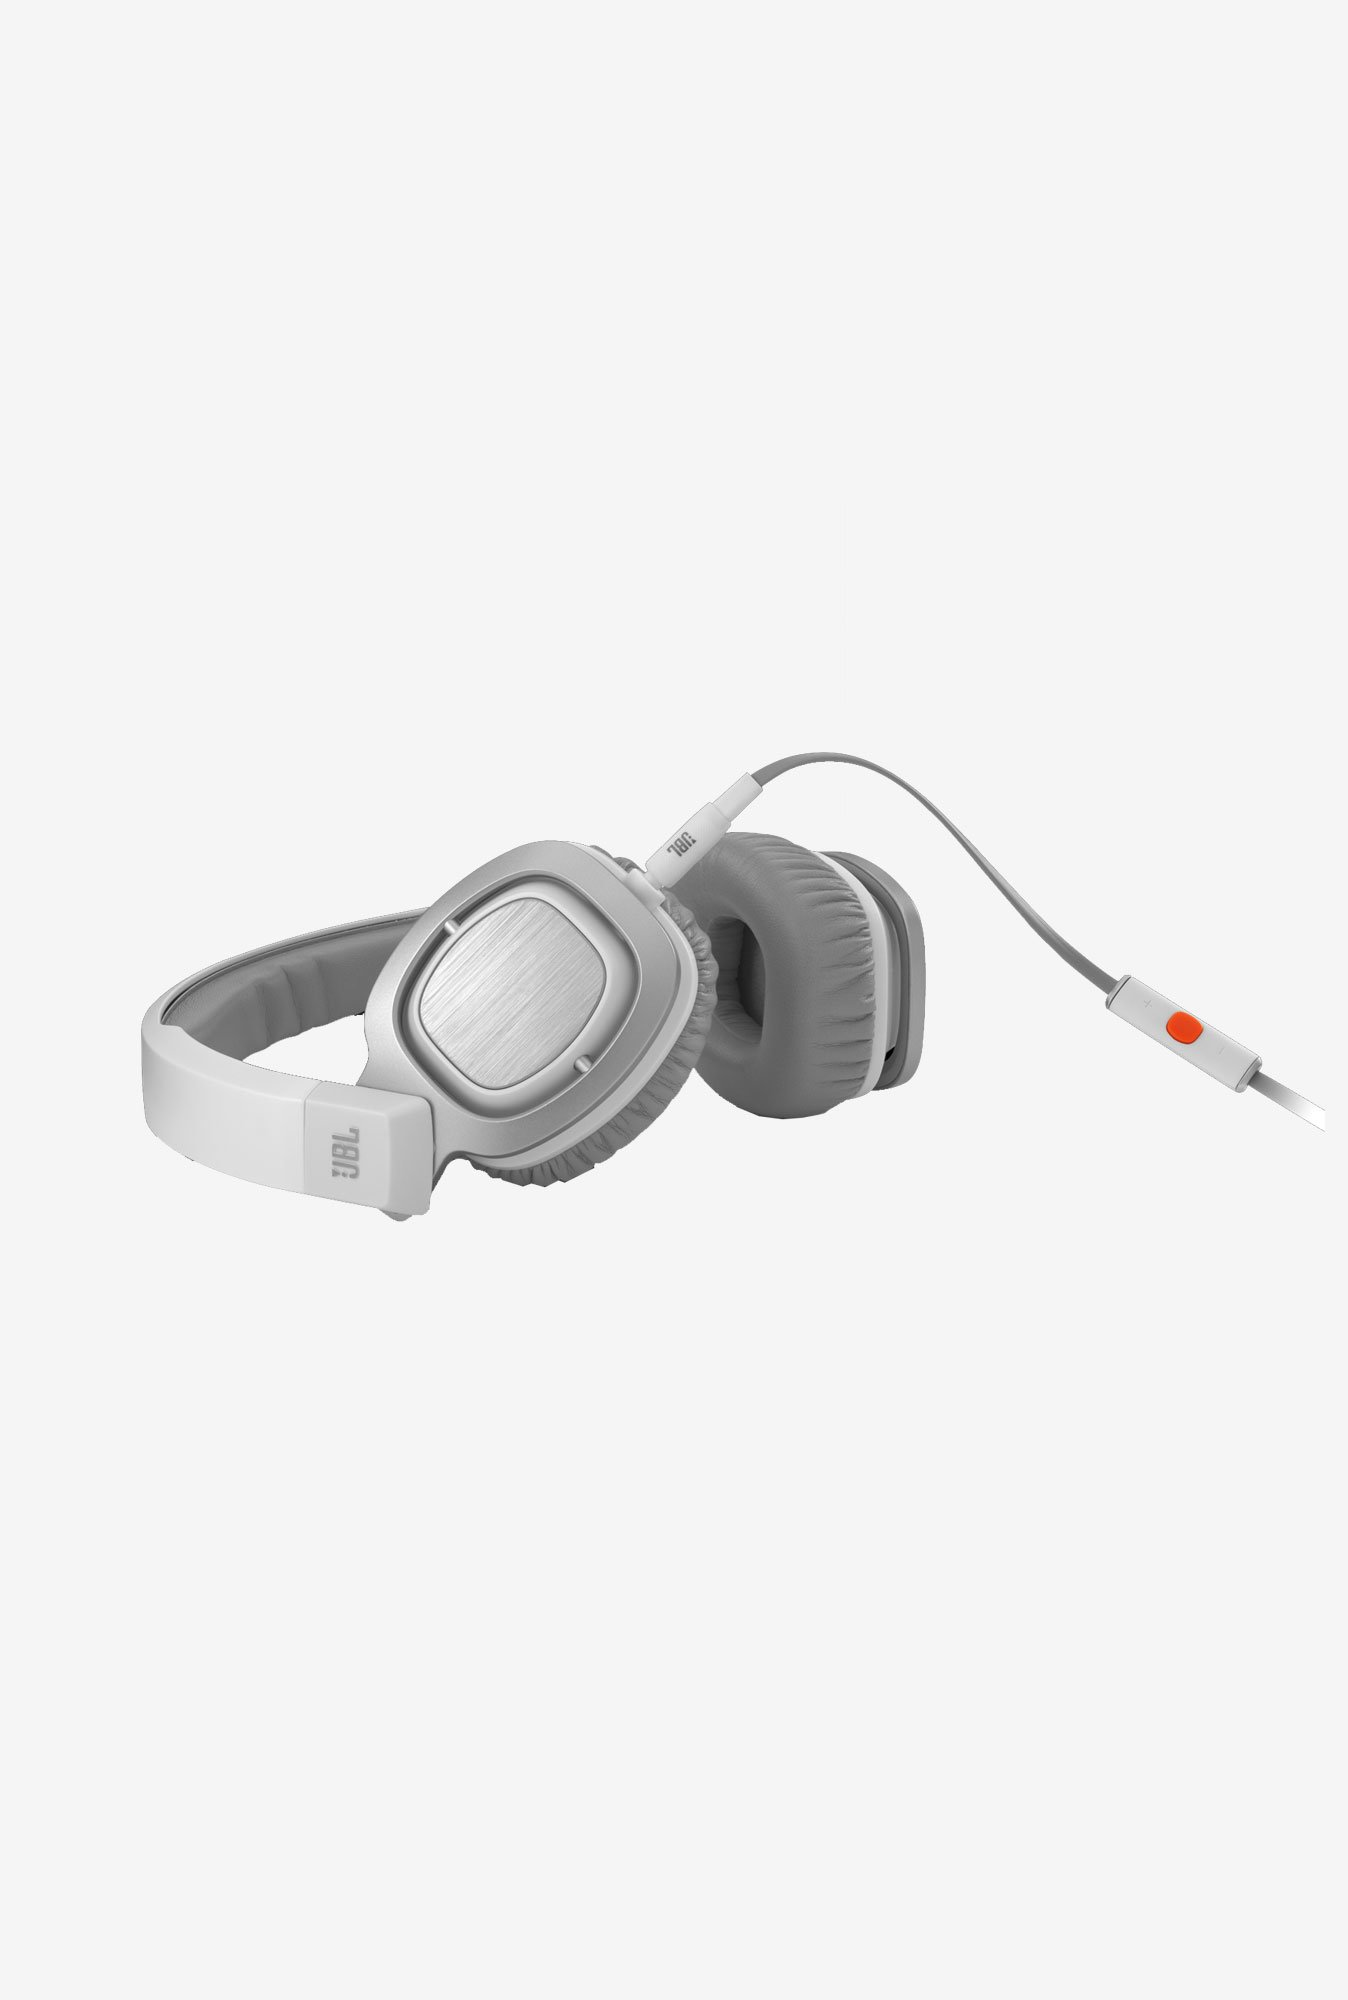 JBL J55i On The Ear Headphone (White)